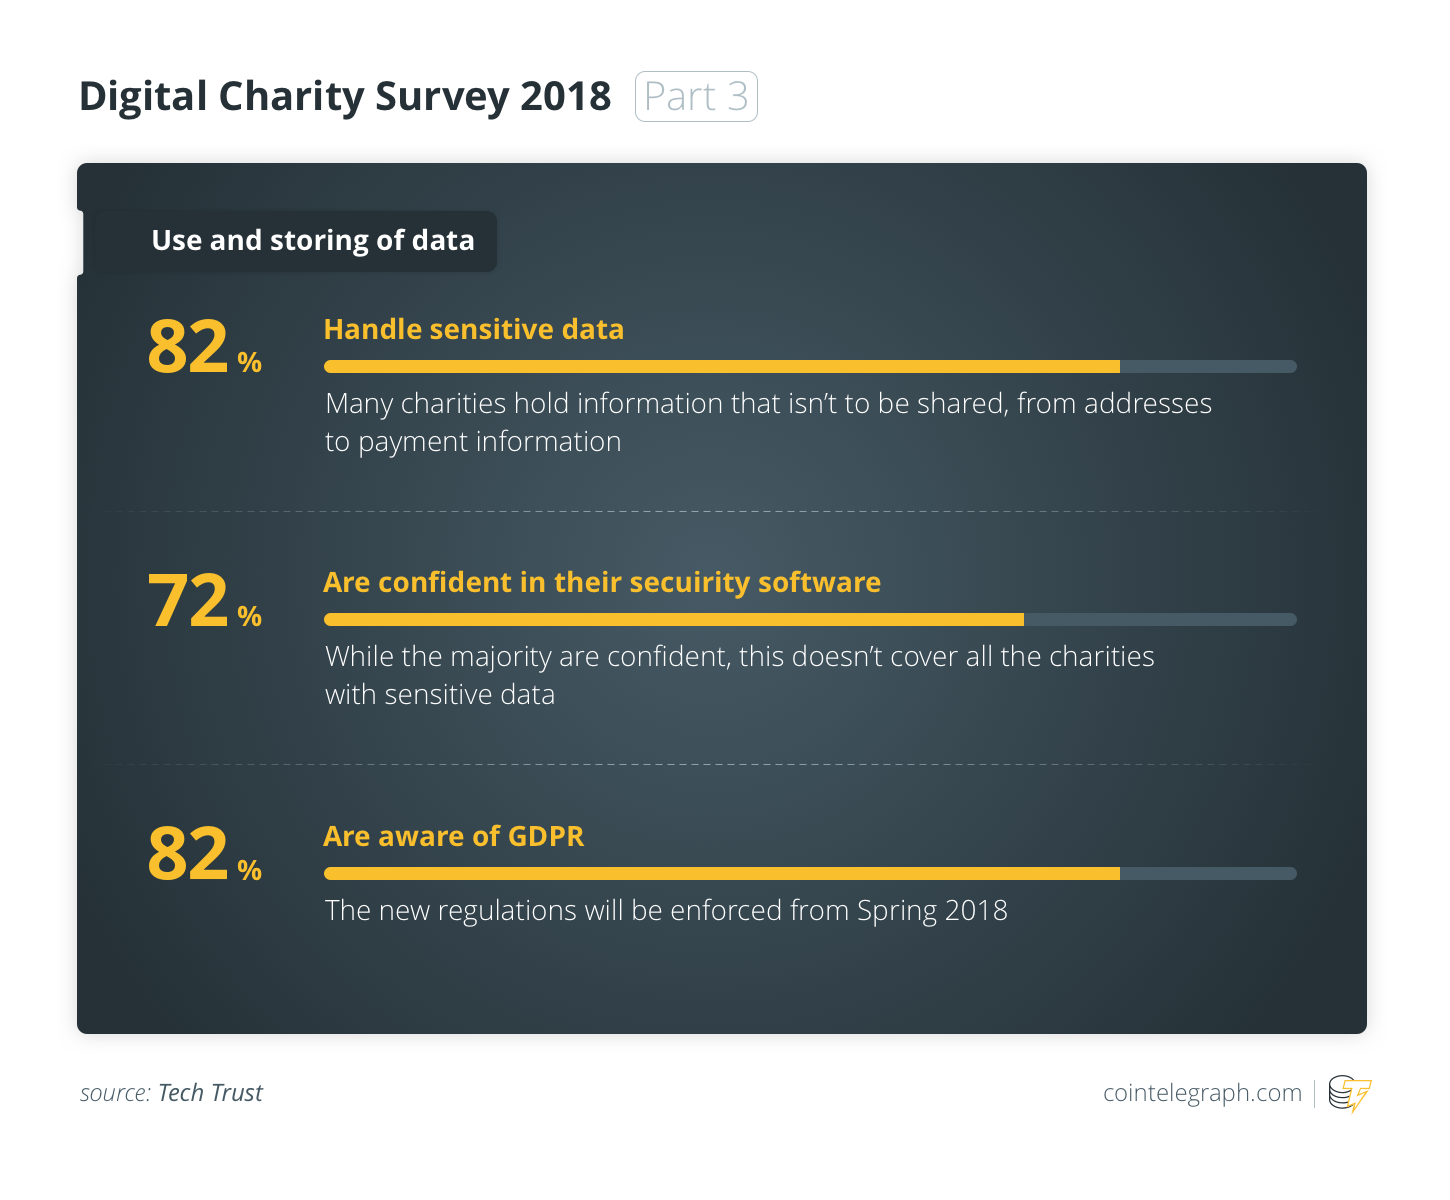 Digital Charity Survey 2018 (Part 3)